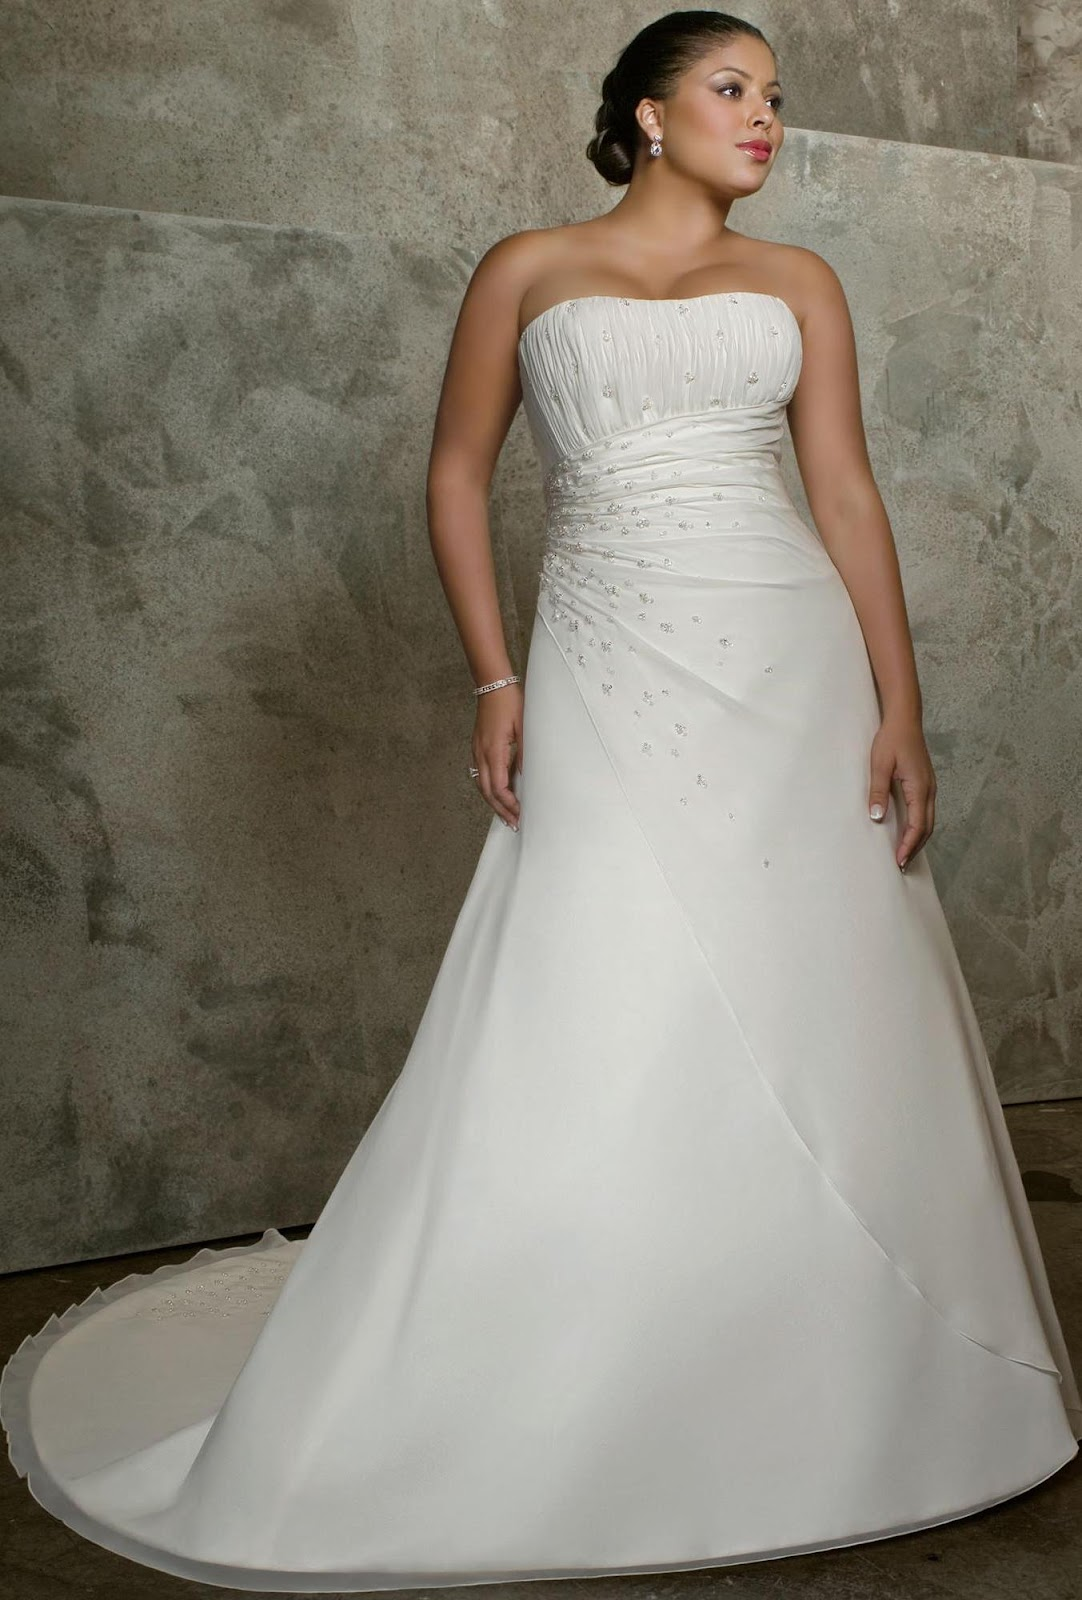 Discount White Strapless Natural Waist Plus Size Wedding Dress kw010